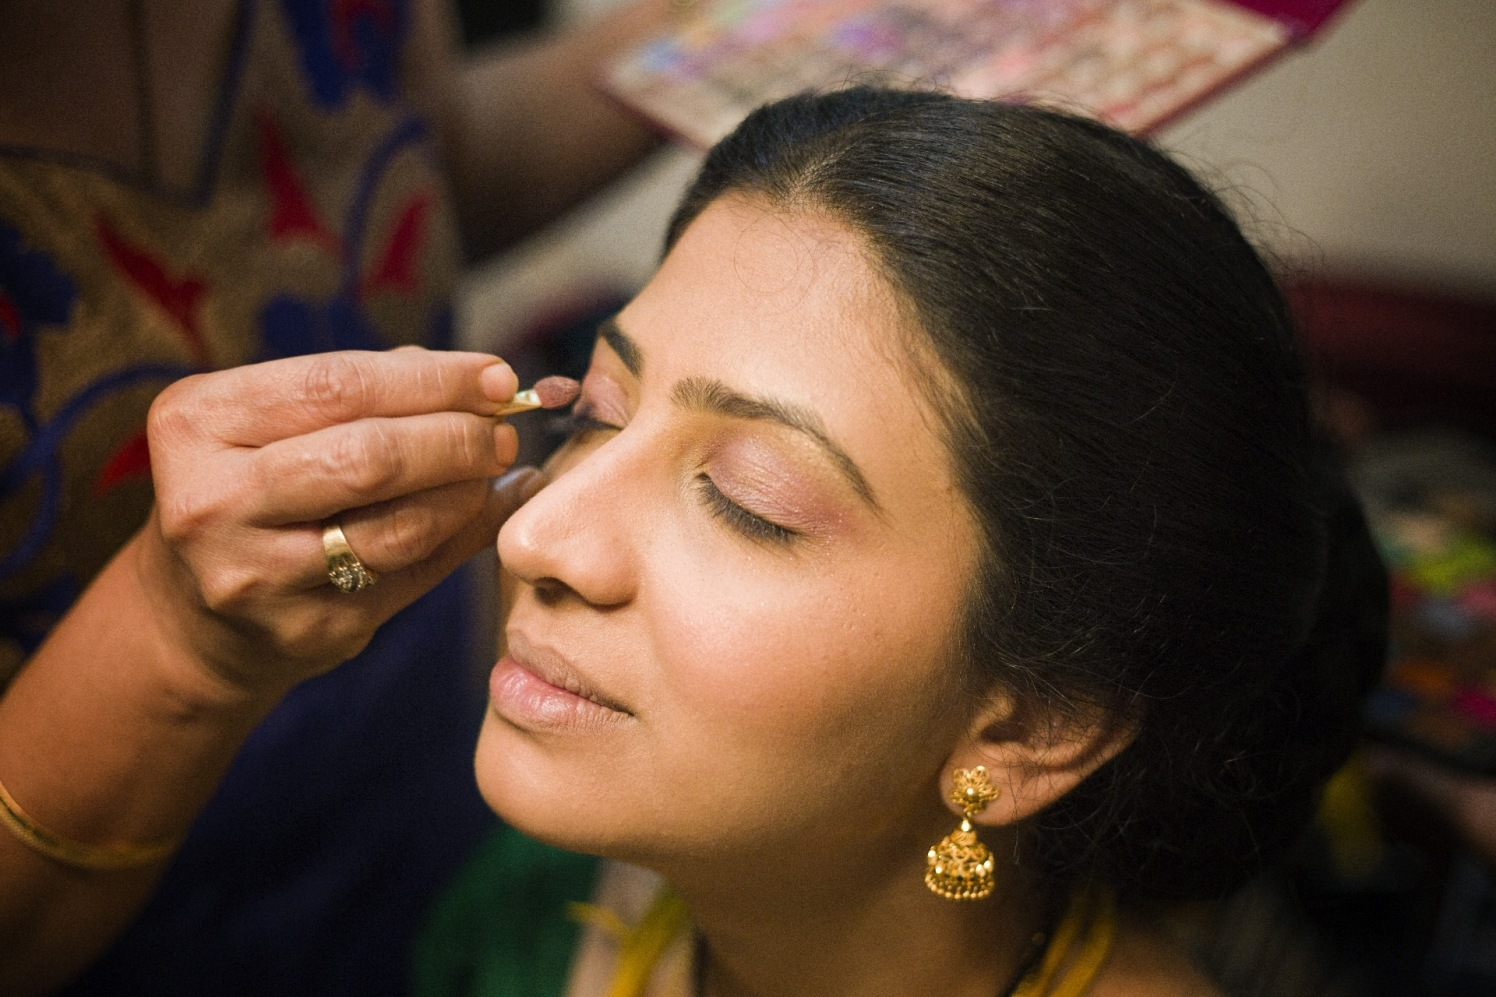 Priming for wedding by Cuttlefish Photography Wedding-photography | Weddings Photos & Ideas